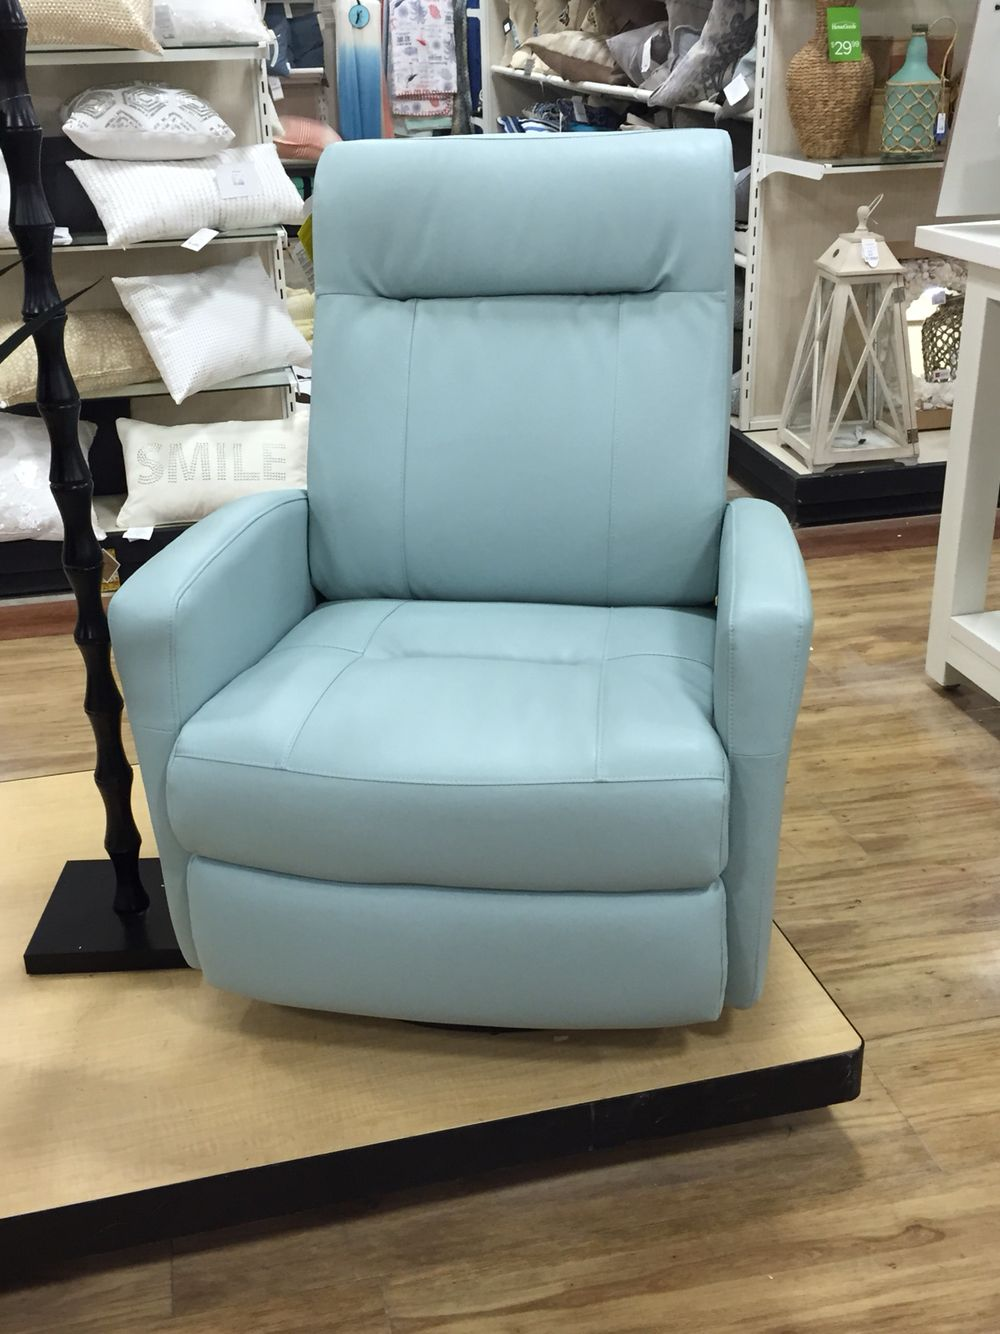 Home Goods leather recliner in light blue. Home Goods leather recliner in light blue    Home   Pinterest